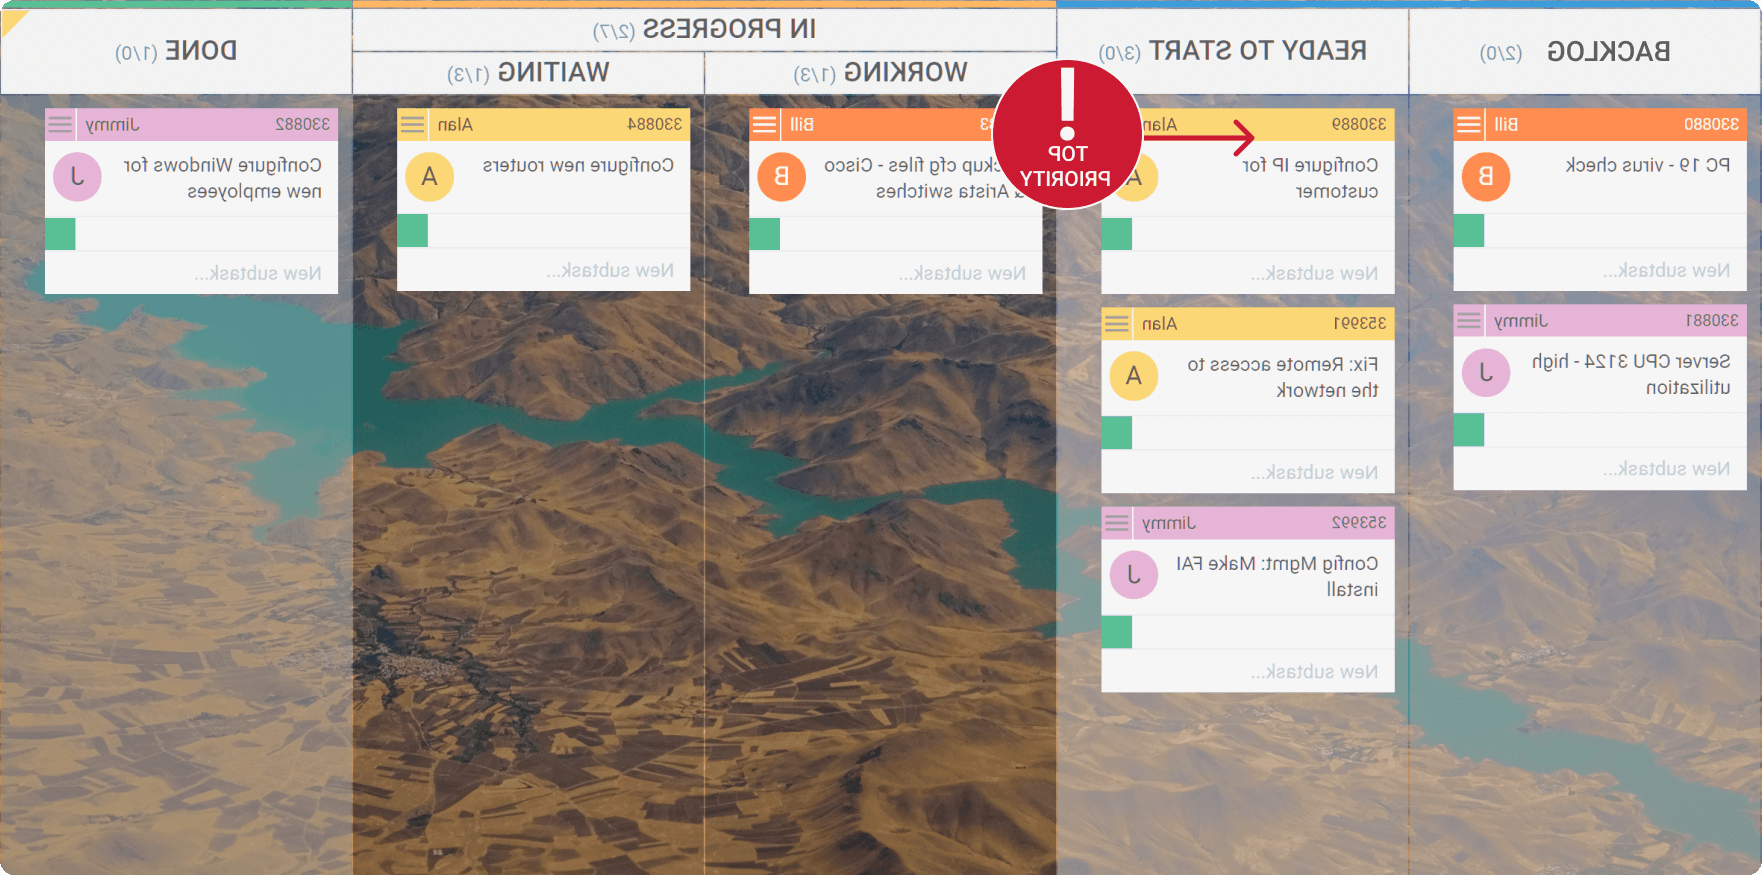 How do you prioritize tasks when working on multiple things at once?